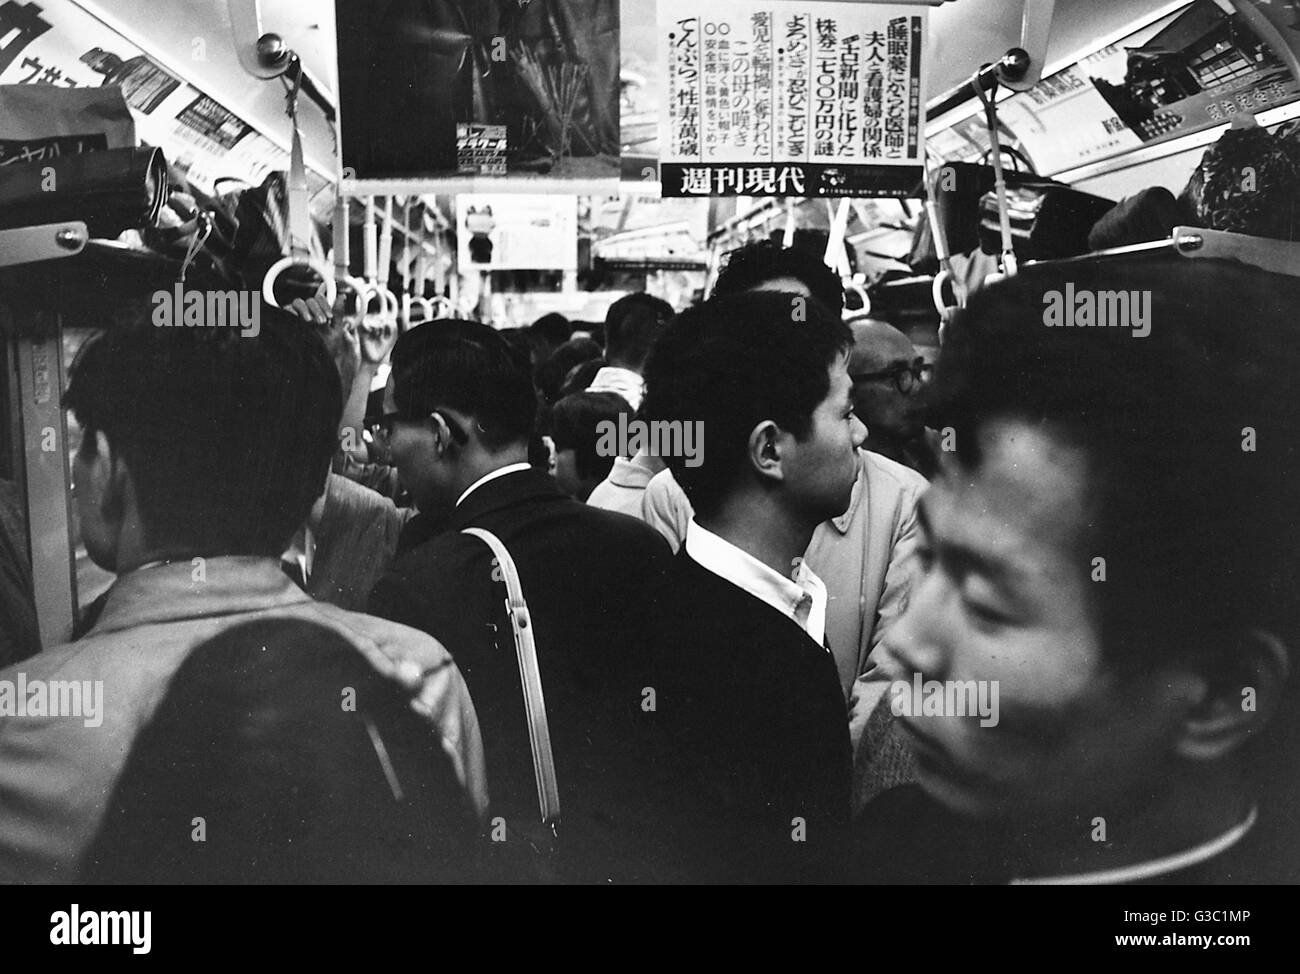 People in a packed train during the evening rush hour, Tokyo, Japan.      Date: circa 1960s - Stock Image